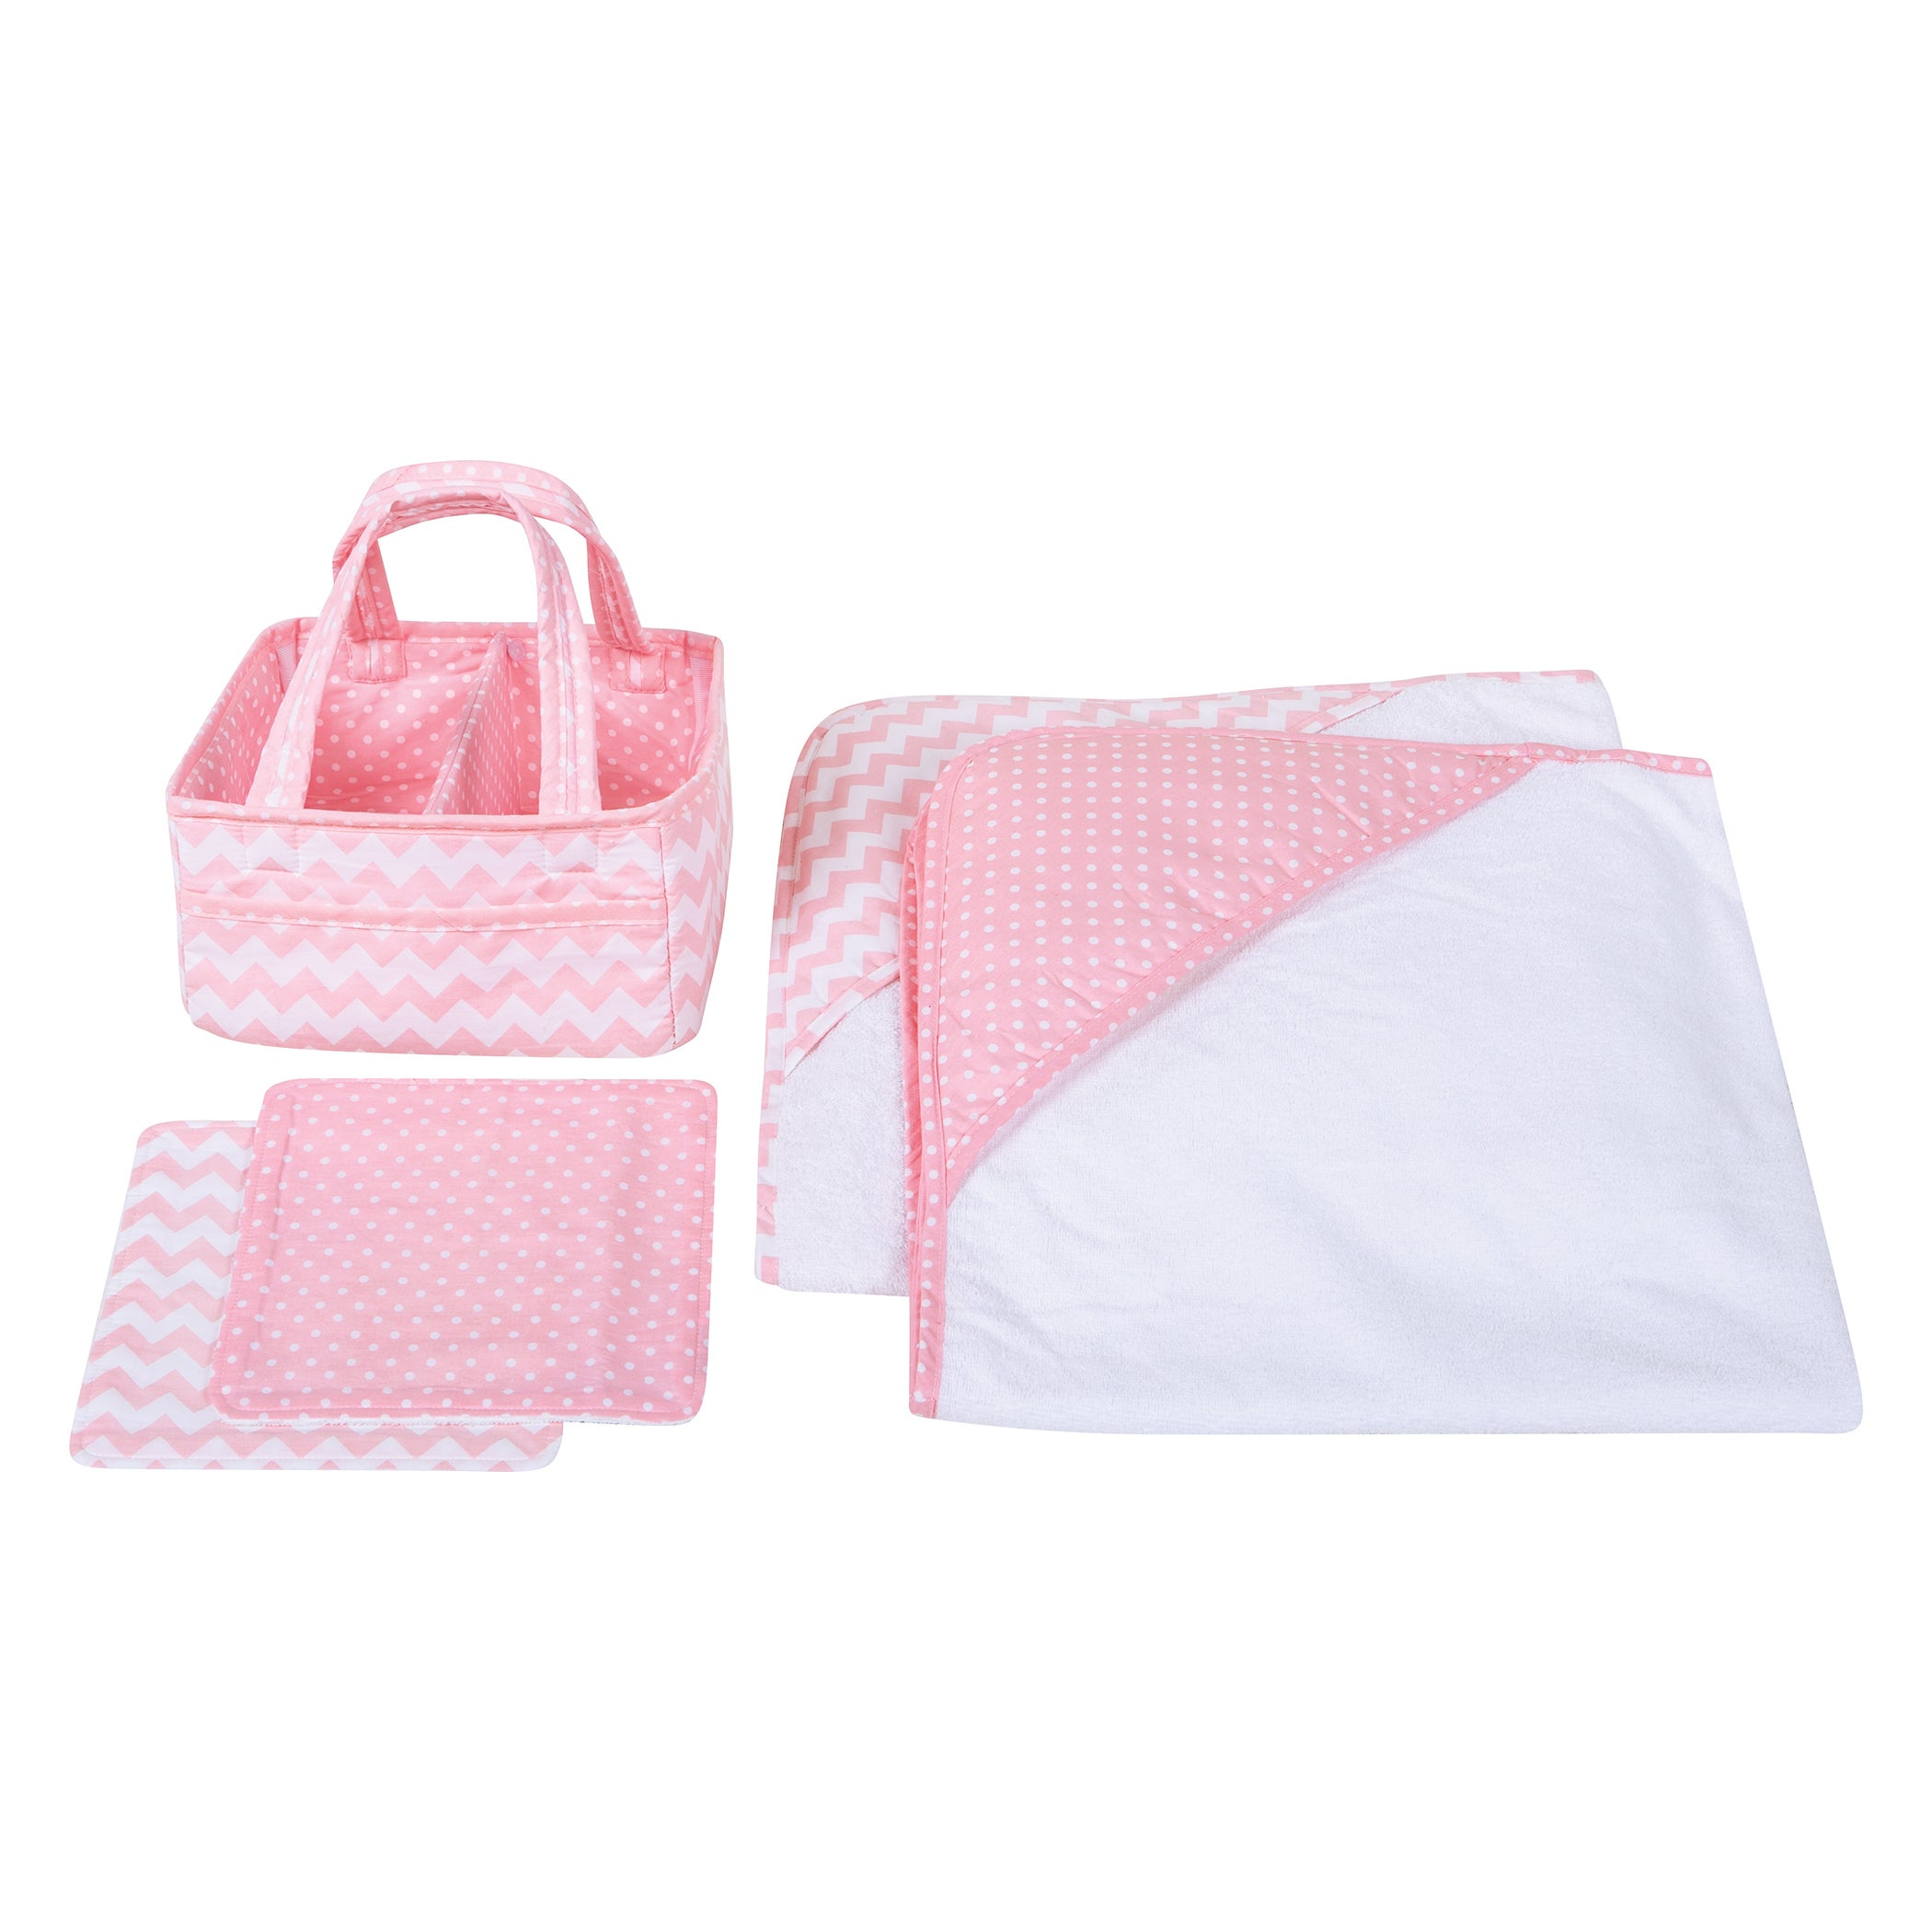 Trend Lab Pink Sky 5-piece Baby Bath Gift Set - Free Shipping Today ...